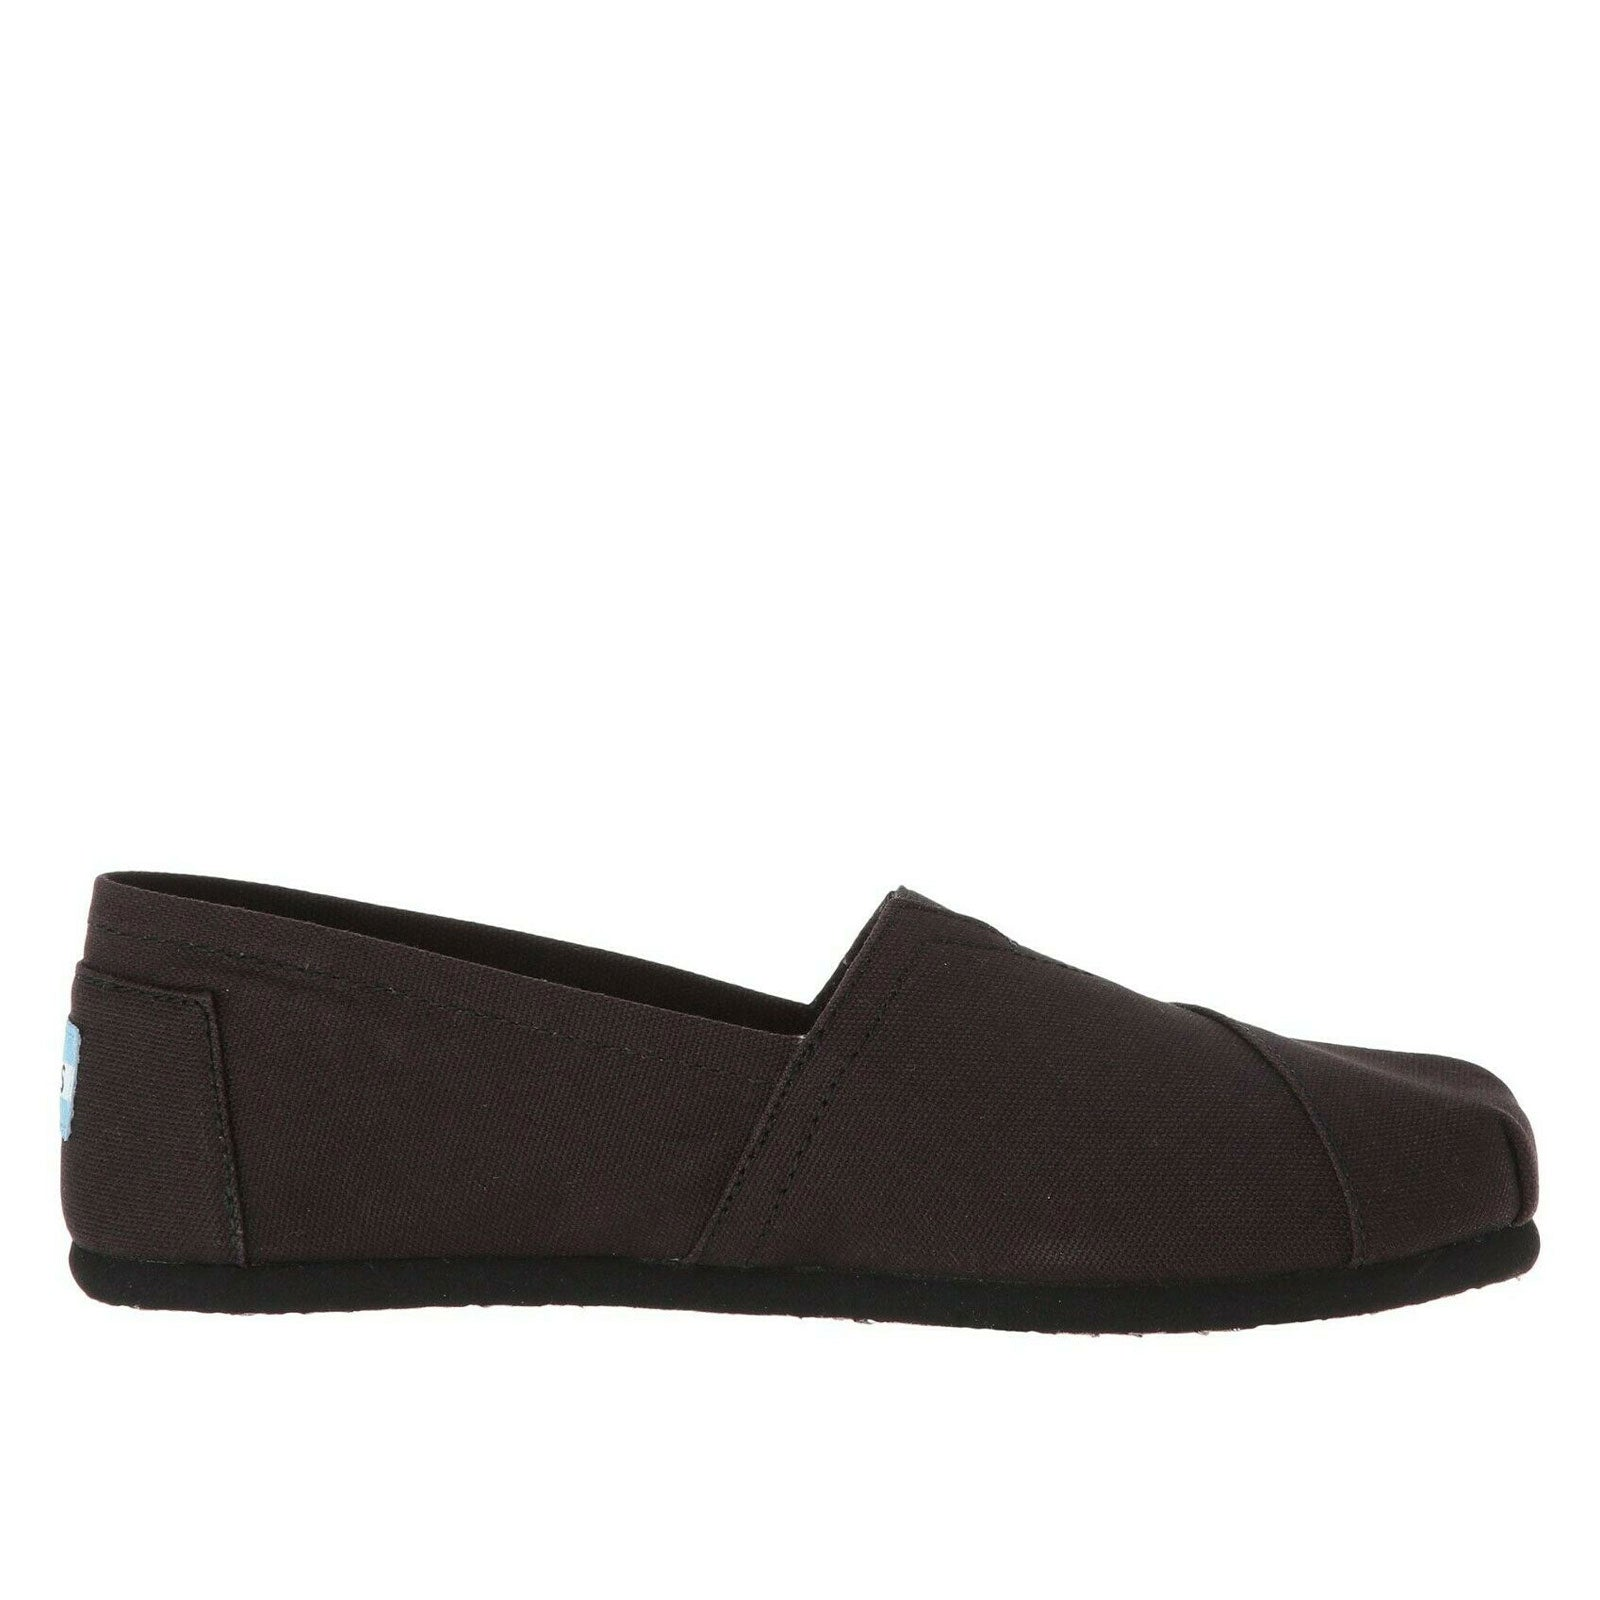 Toms Classic-Black on Black Canvas